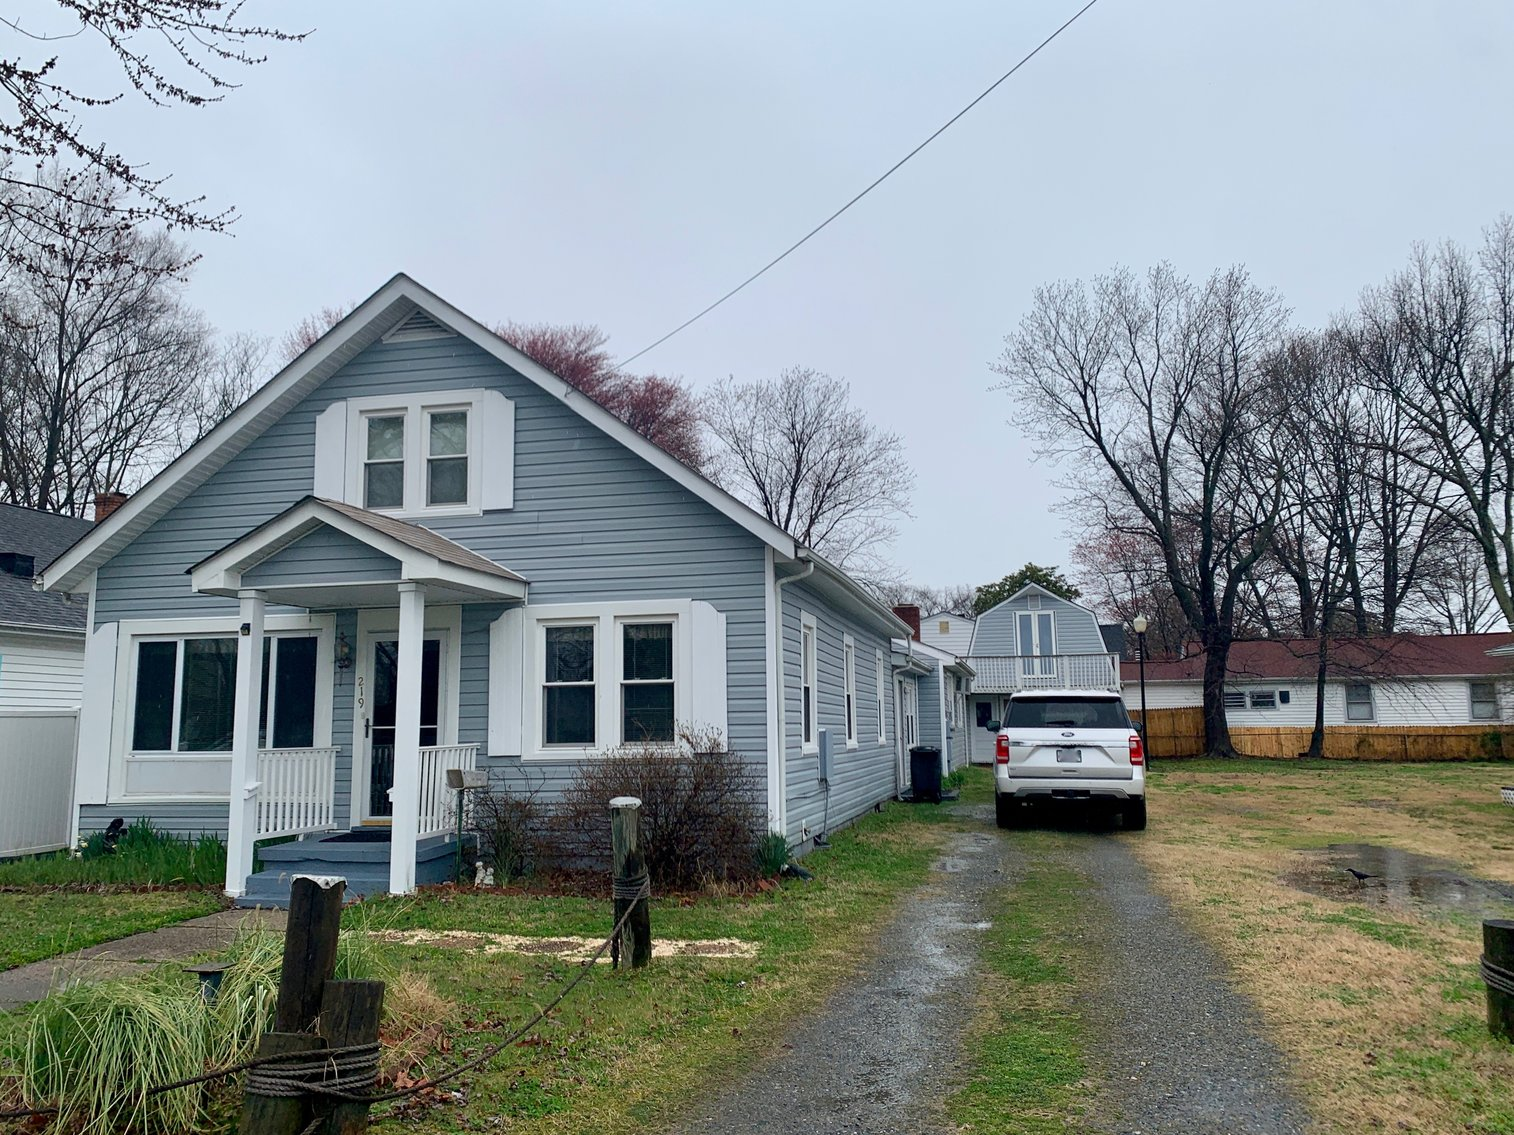 Image for 4 BR/2 BA Home w/Detached Garage/Shop Only 2 Blocks From the Potomac River--Colonial Beach, VA